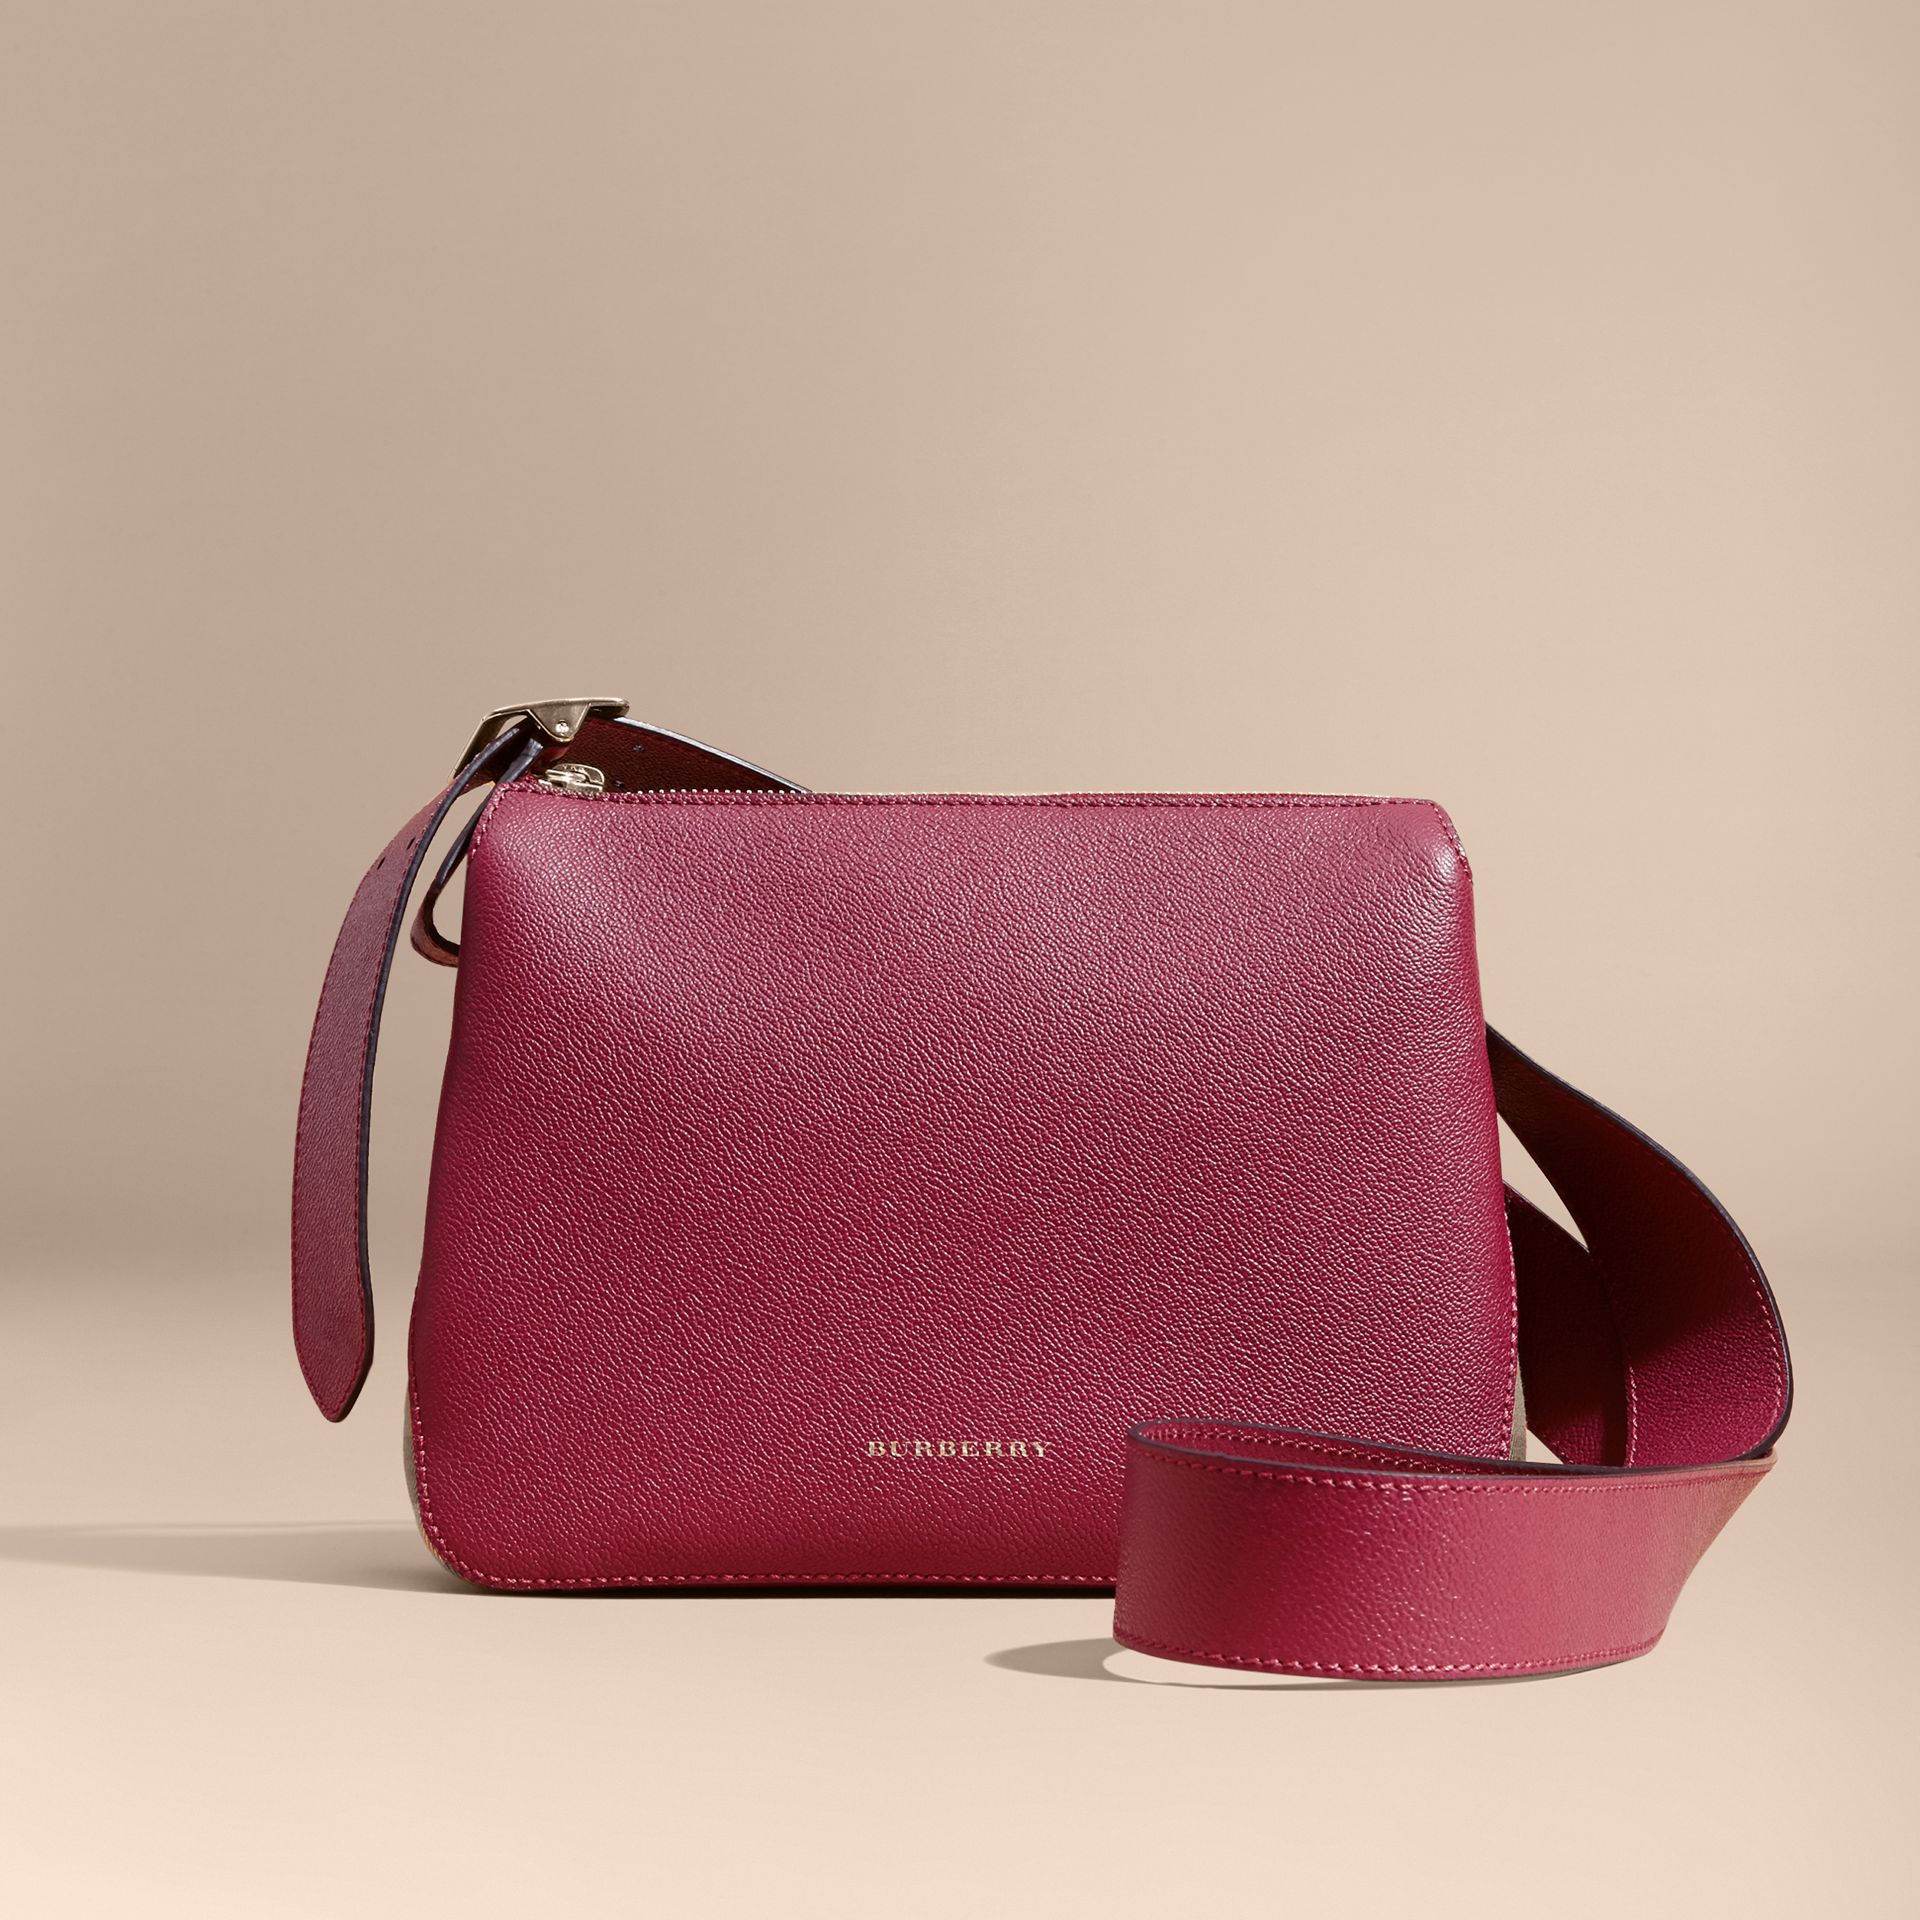 Buckle Detail Leather and House Check Crossbody Bag in Dark Plum - Women | Burberry - gallery image 8